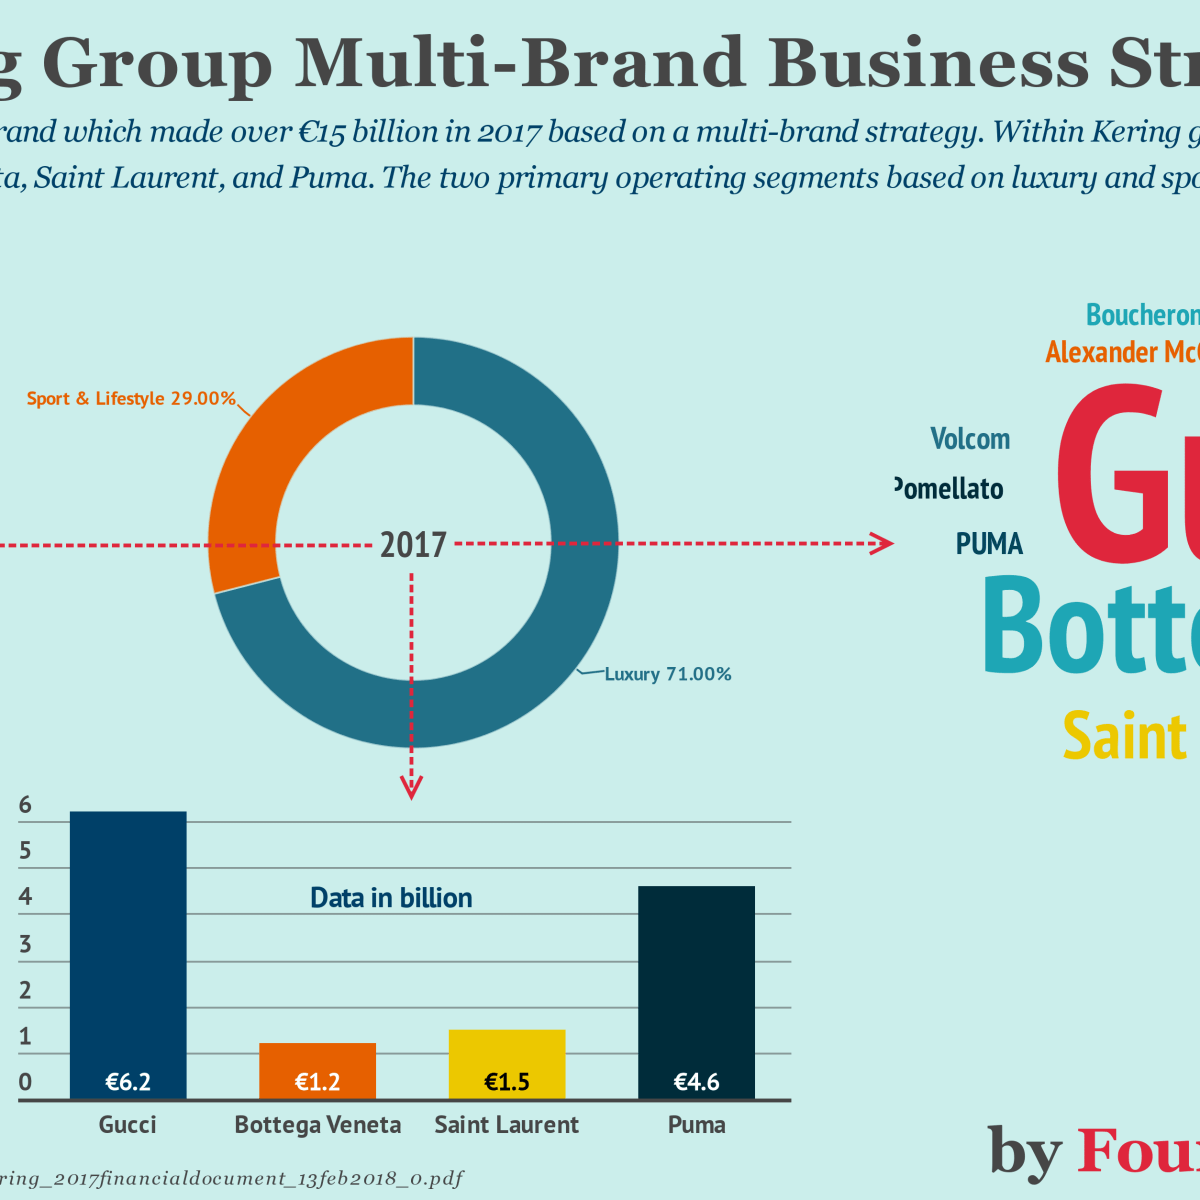 The Kering Group Multi-Brand Business Model In A Nutshell